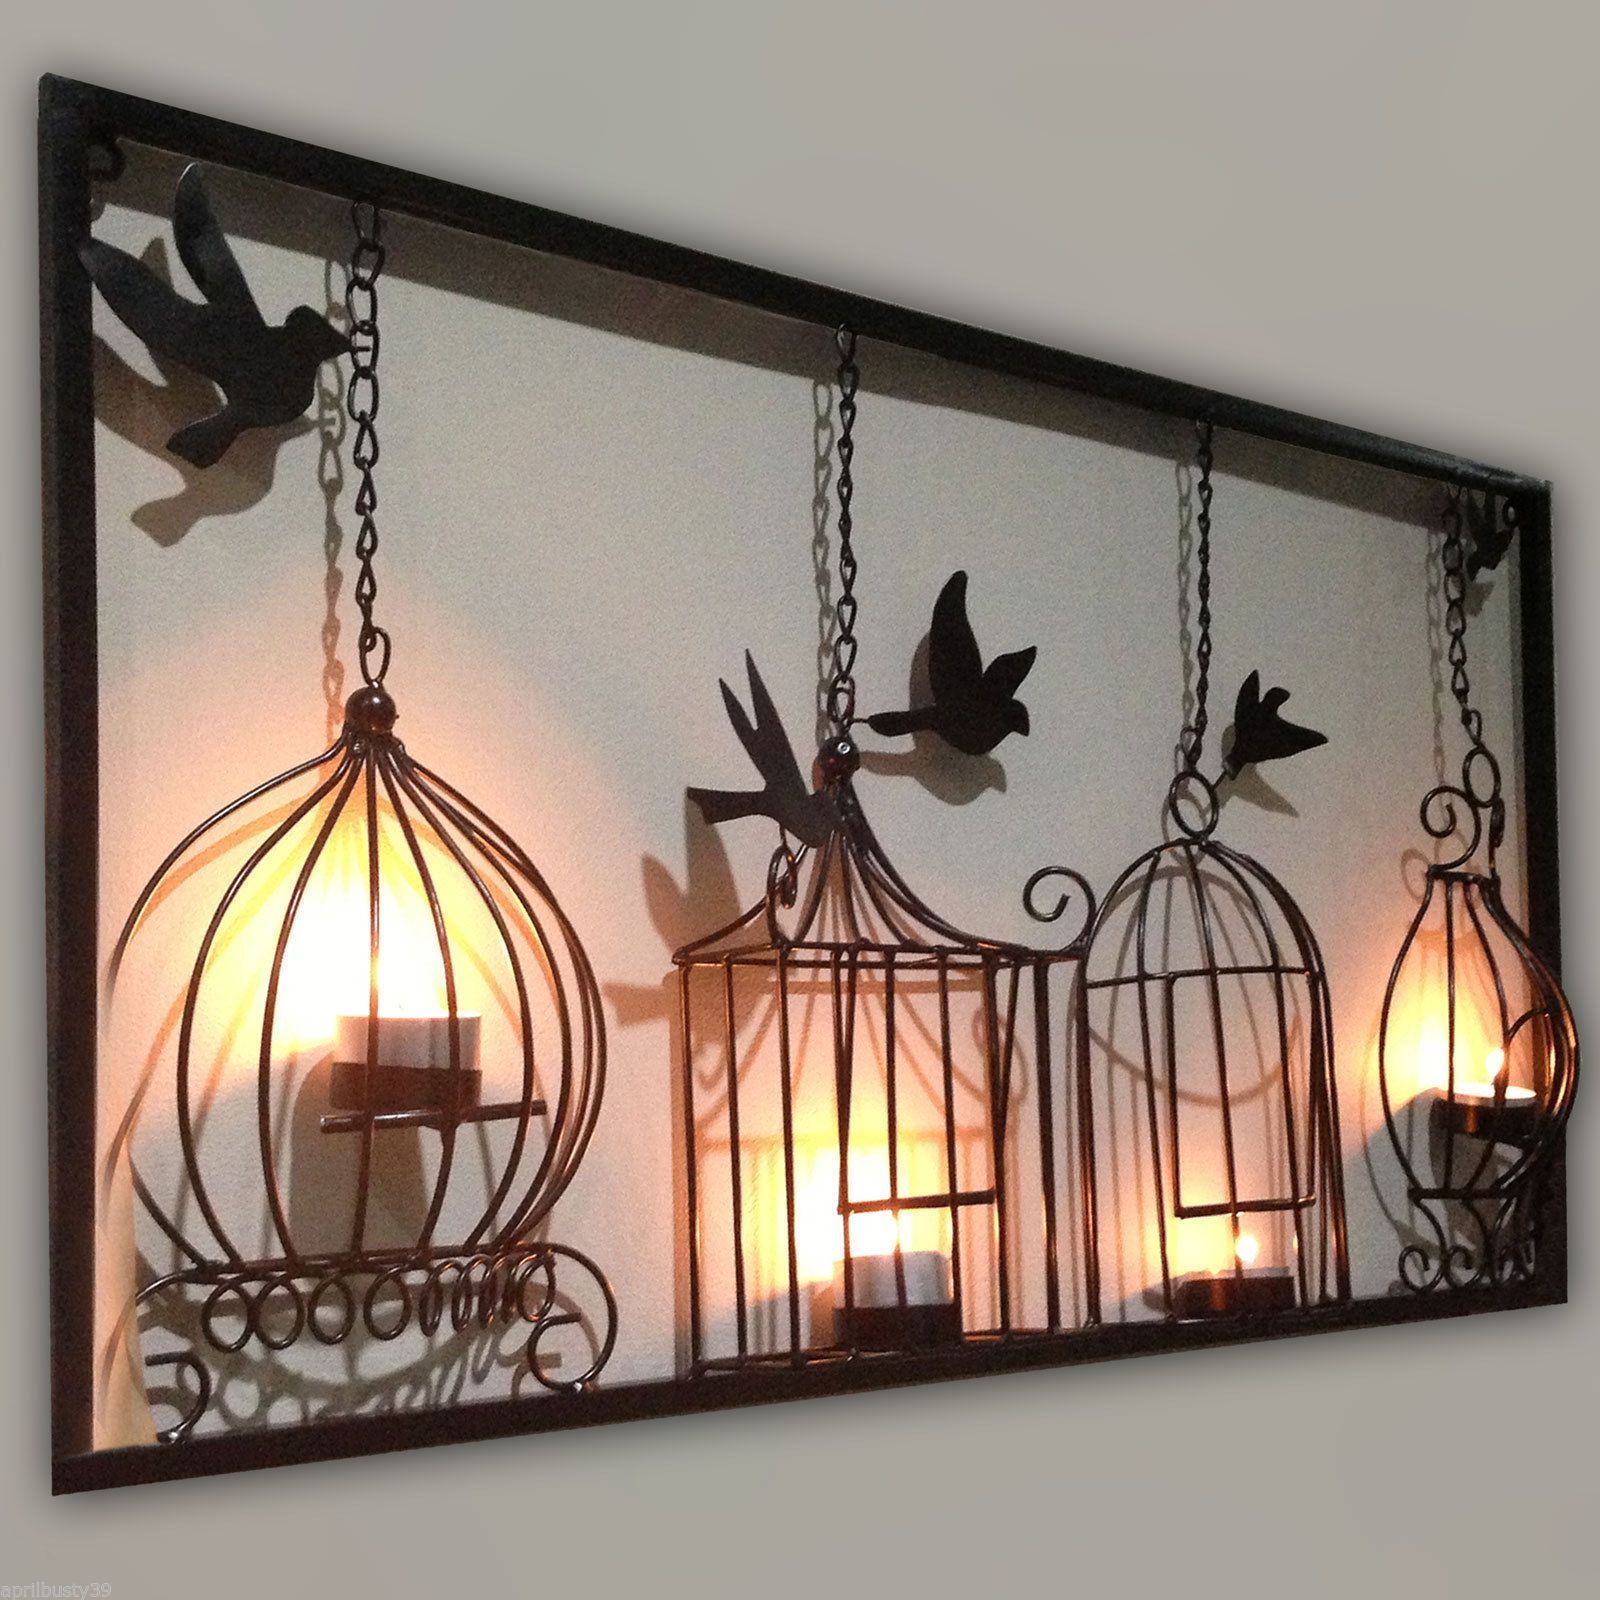 Black Wrought Iron Wall Decor Stunning Birdcage Tea Light Wall Art Metal Wall Hanging Candle Holder Black Inspiration Design